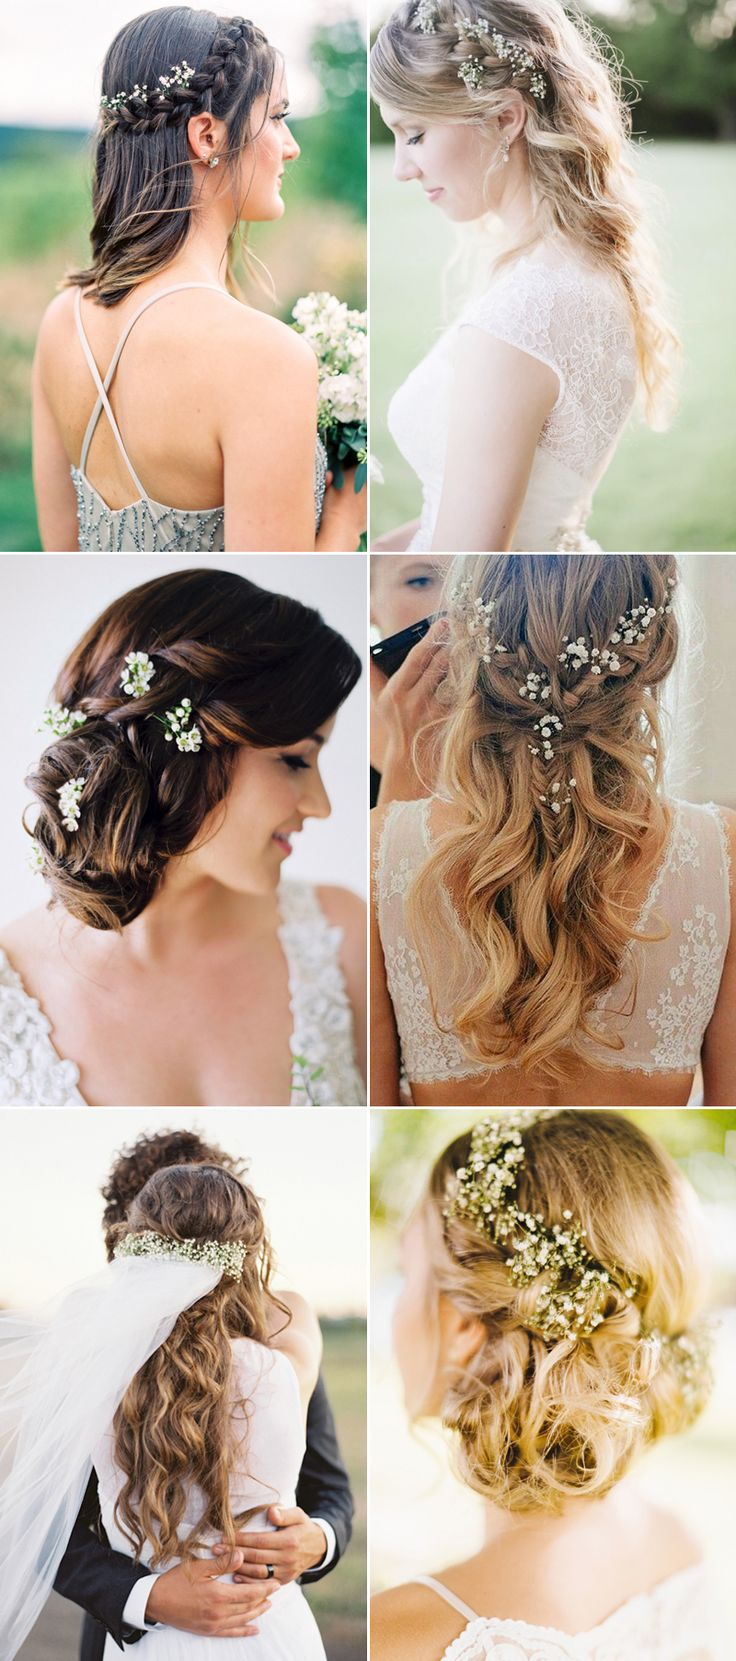 20 Adorable Ways To Wear Baby's Breath In Your Hair!